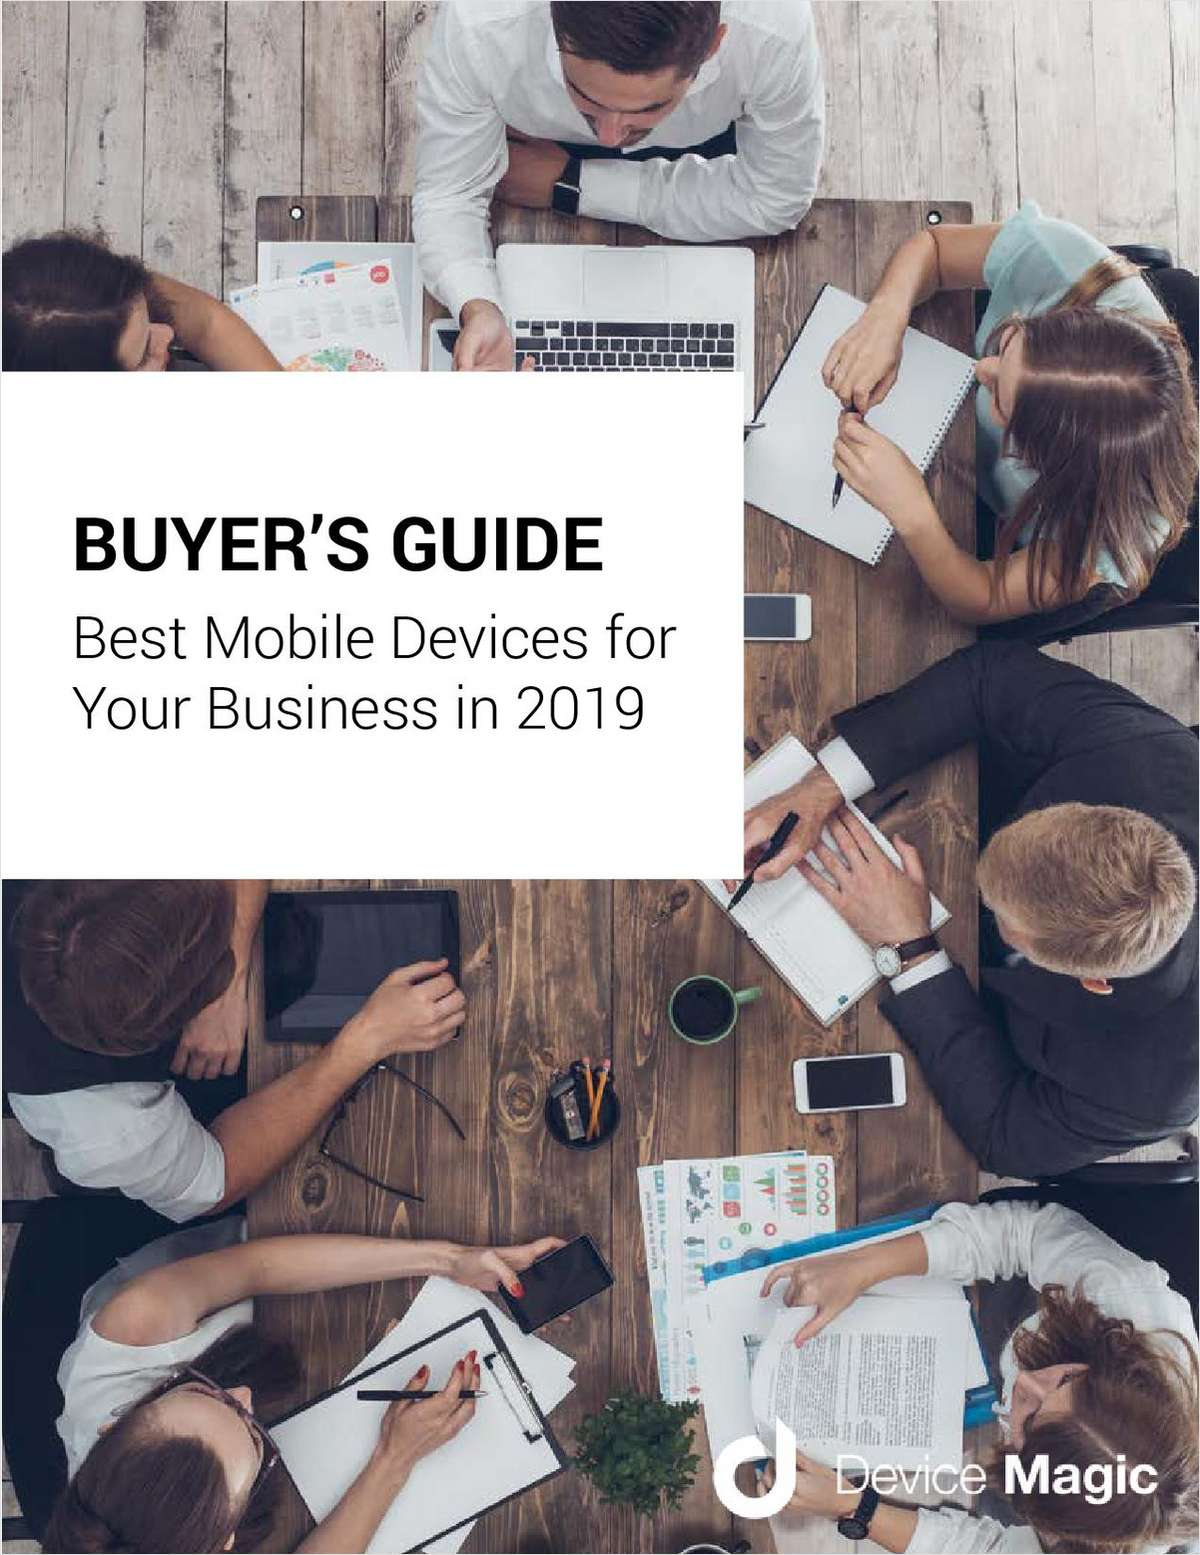 Best Mobile Devices for Your Business in 2019